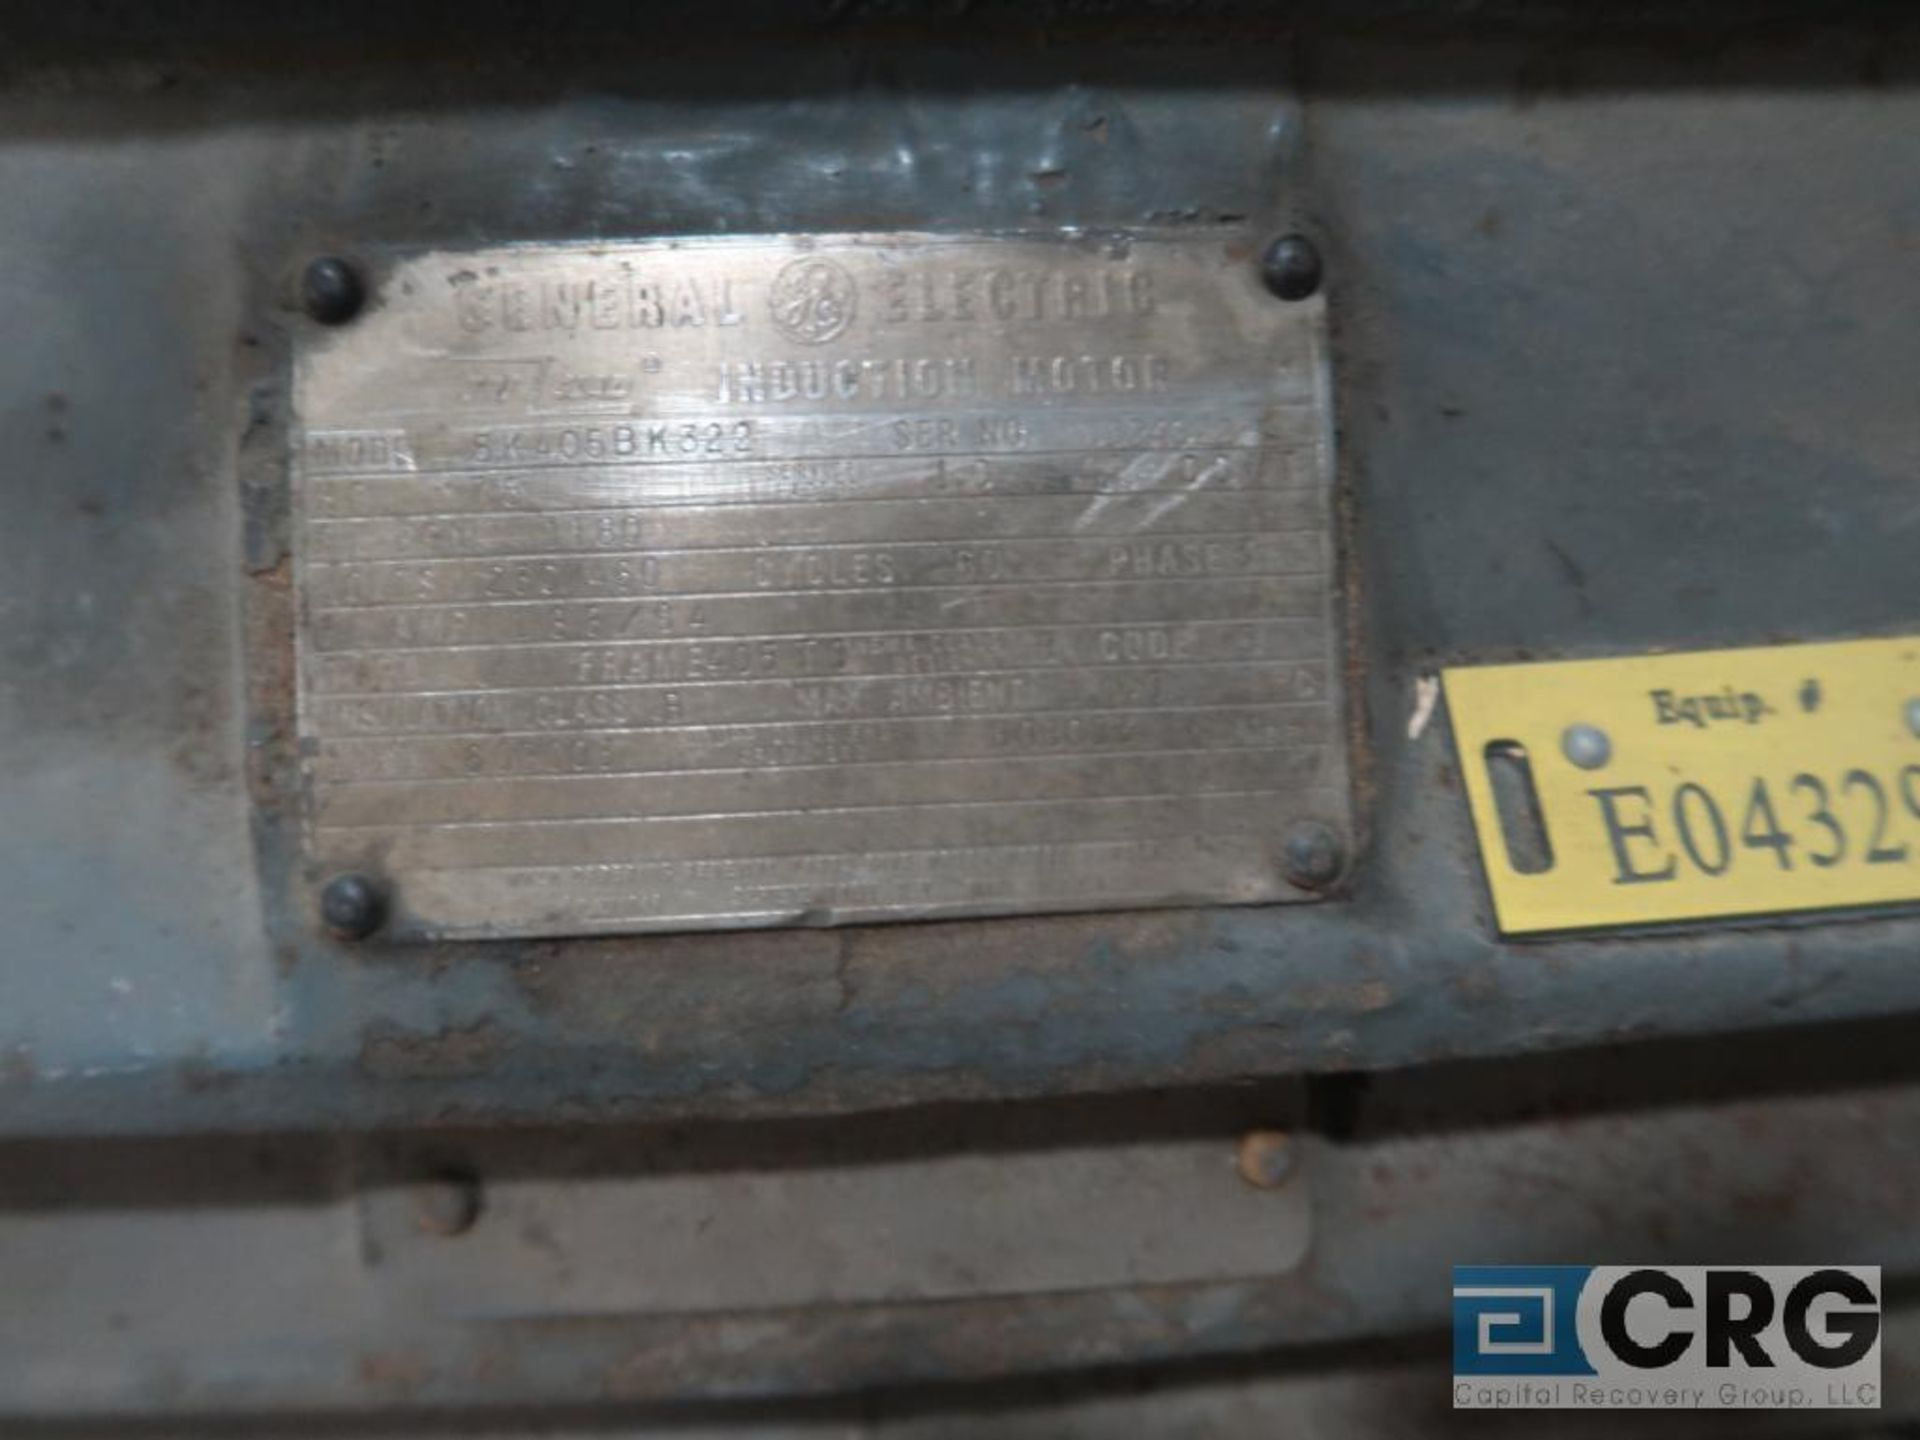 General Electric induction motor, 75 HP, 1,180 RPMs, 230/460 volt, 3 ph., 405TS frame (Finish - Image 2 of 2